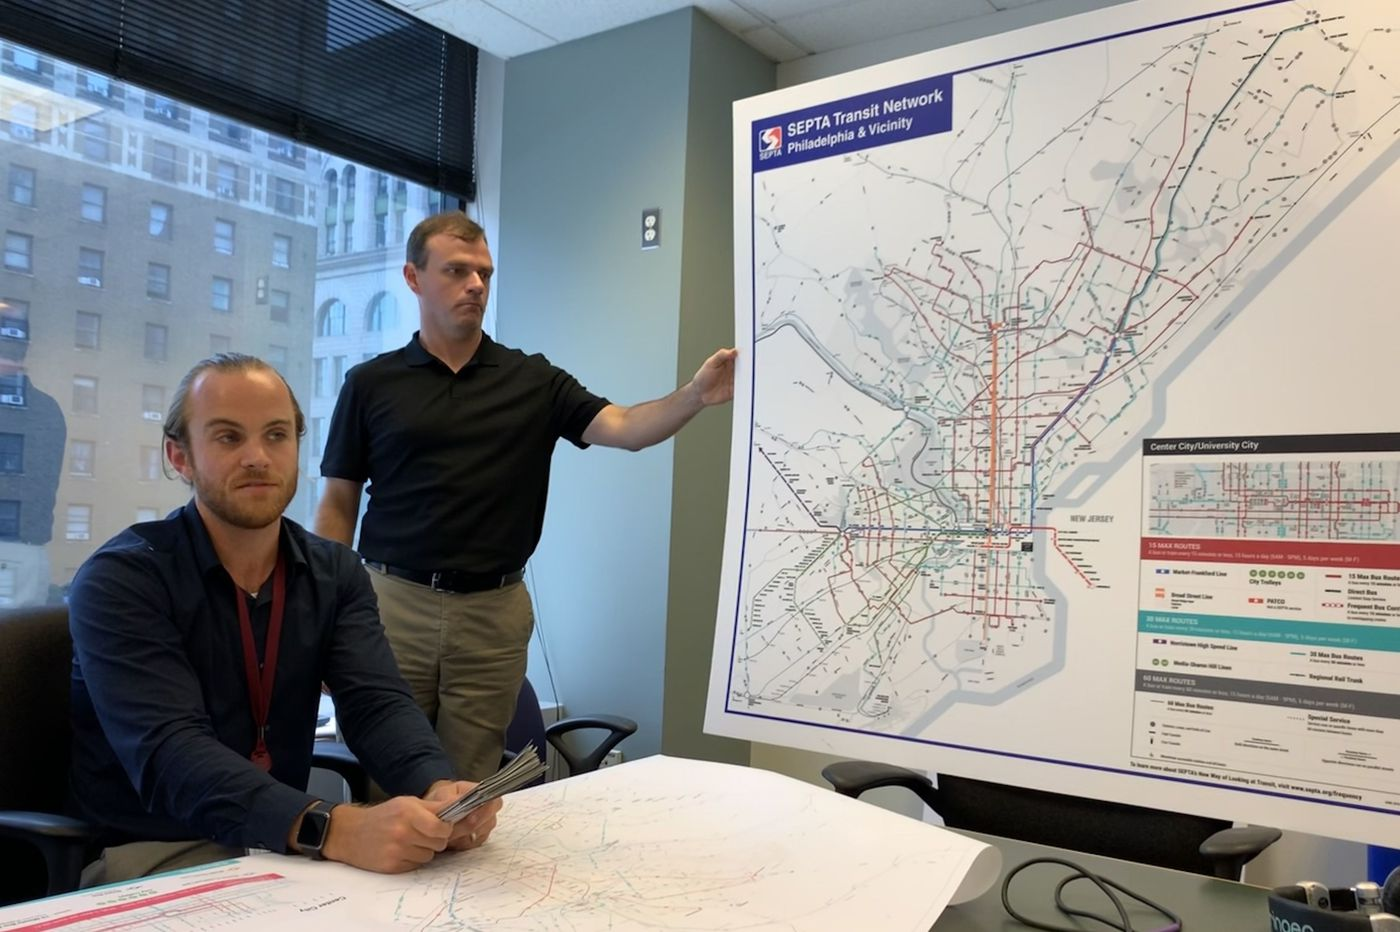 After fine-tuning, SEPTA's new transit map to debut